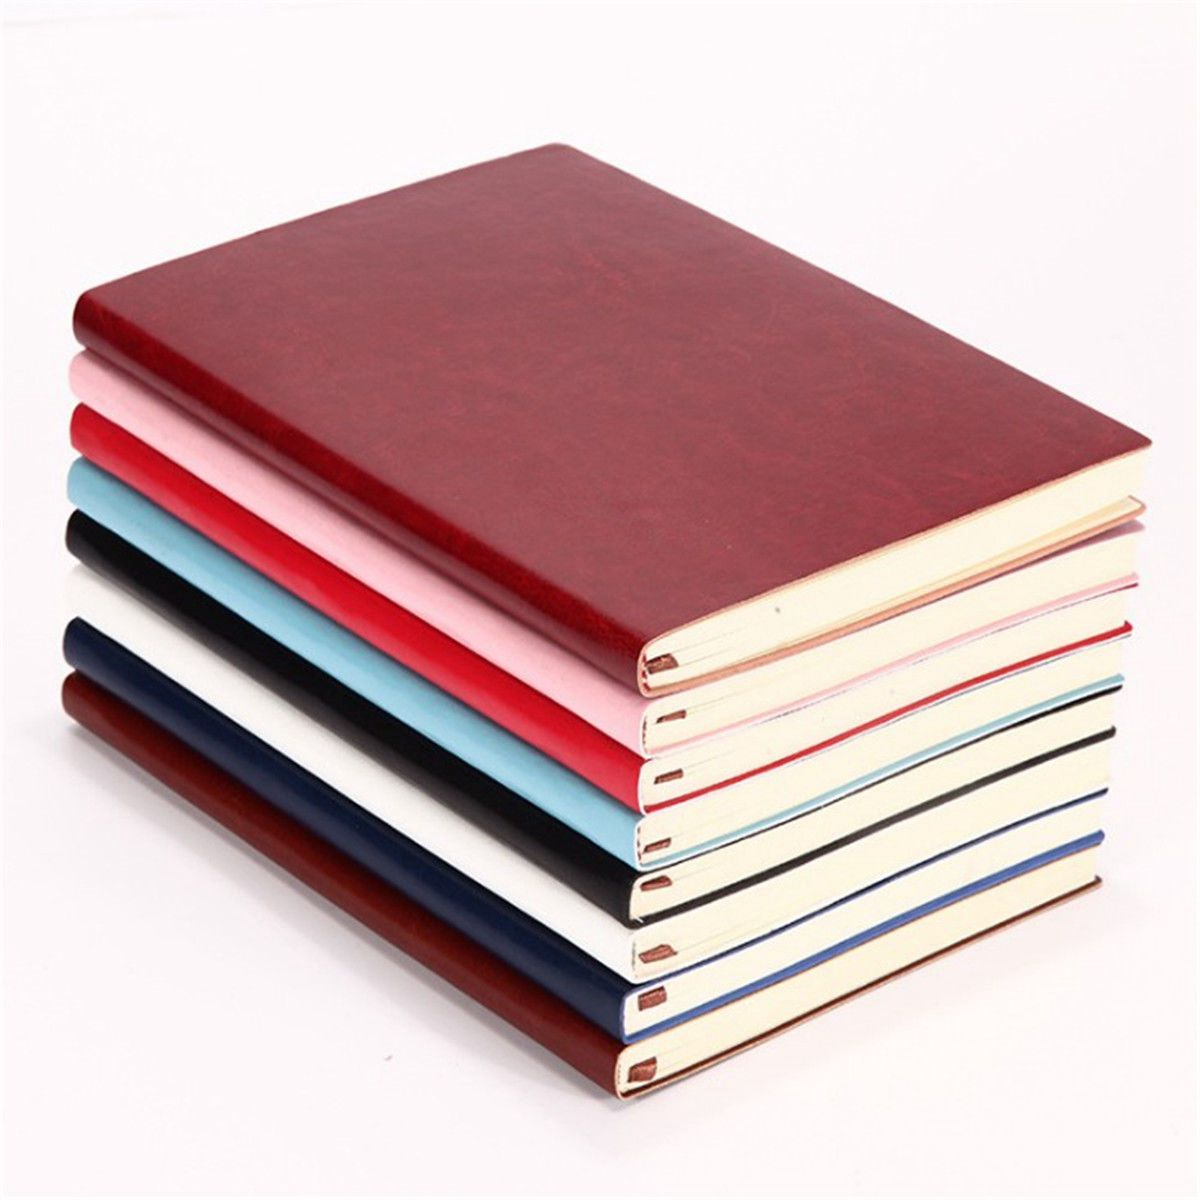 6 Color Random Soft Cover PU Leather Notebook Writing Journal 100 Page Lined Diary Book l228 page 6